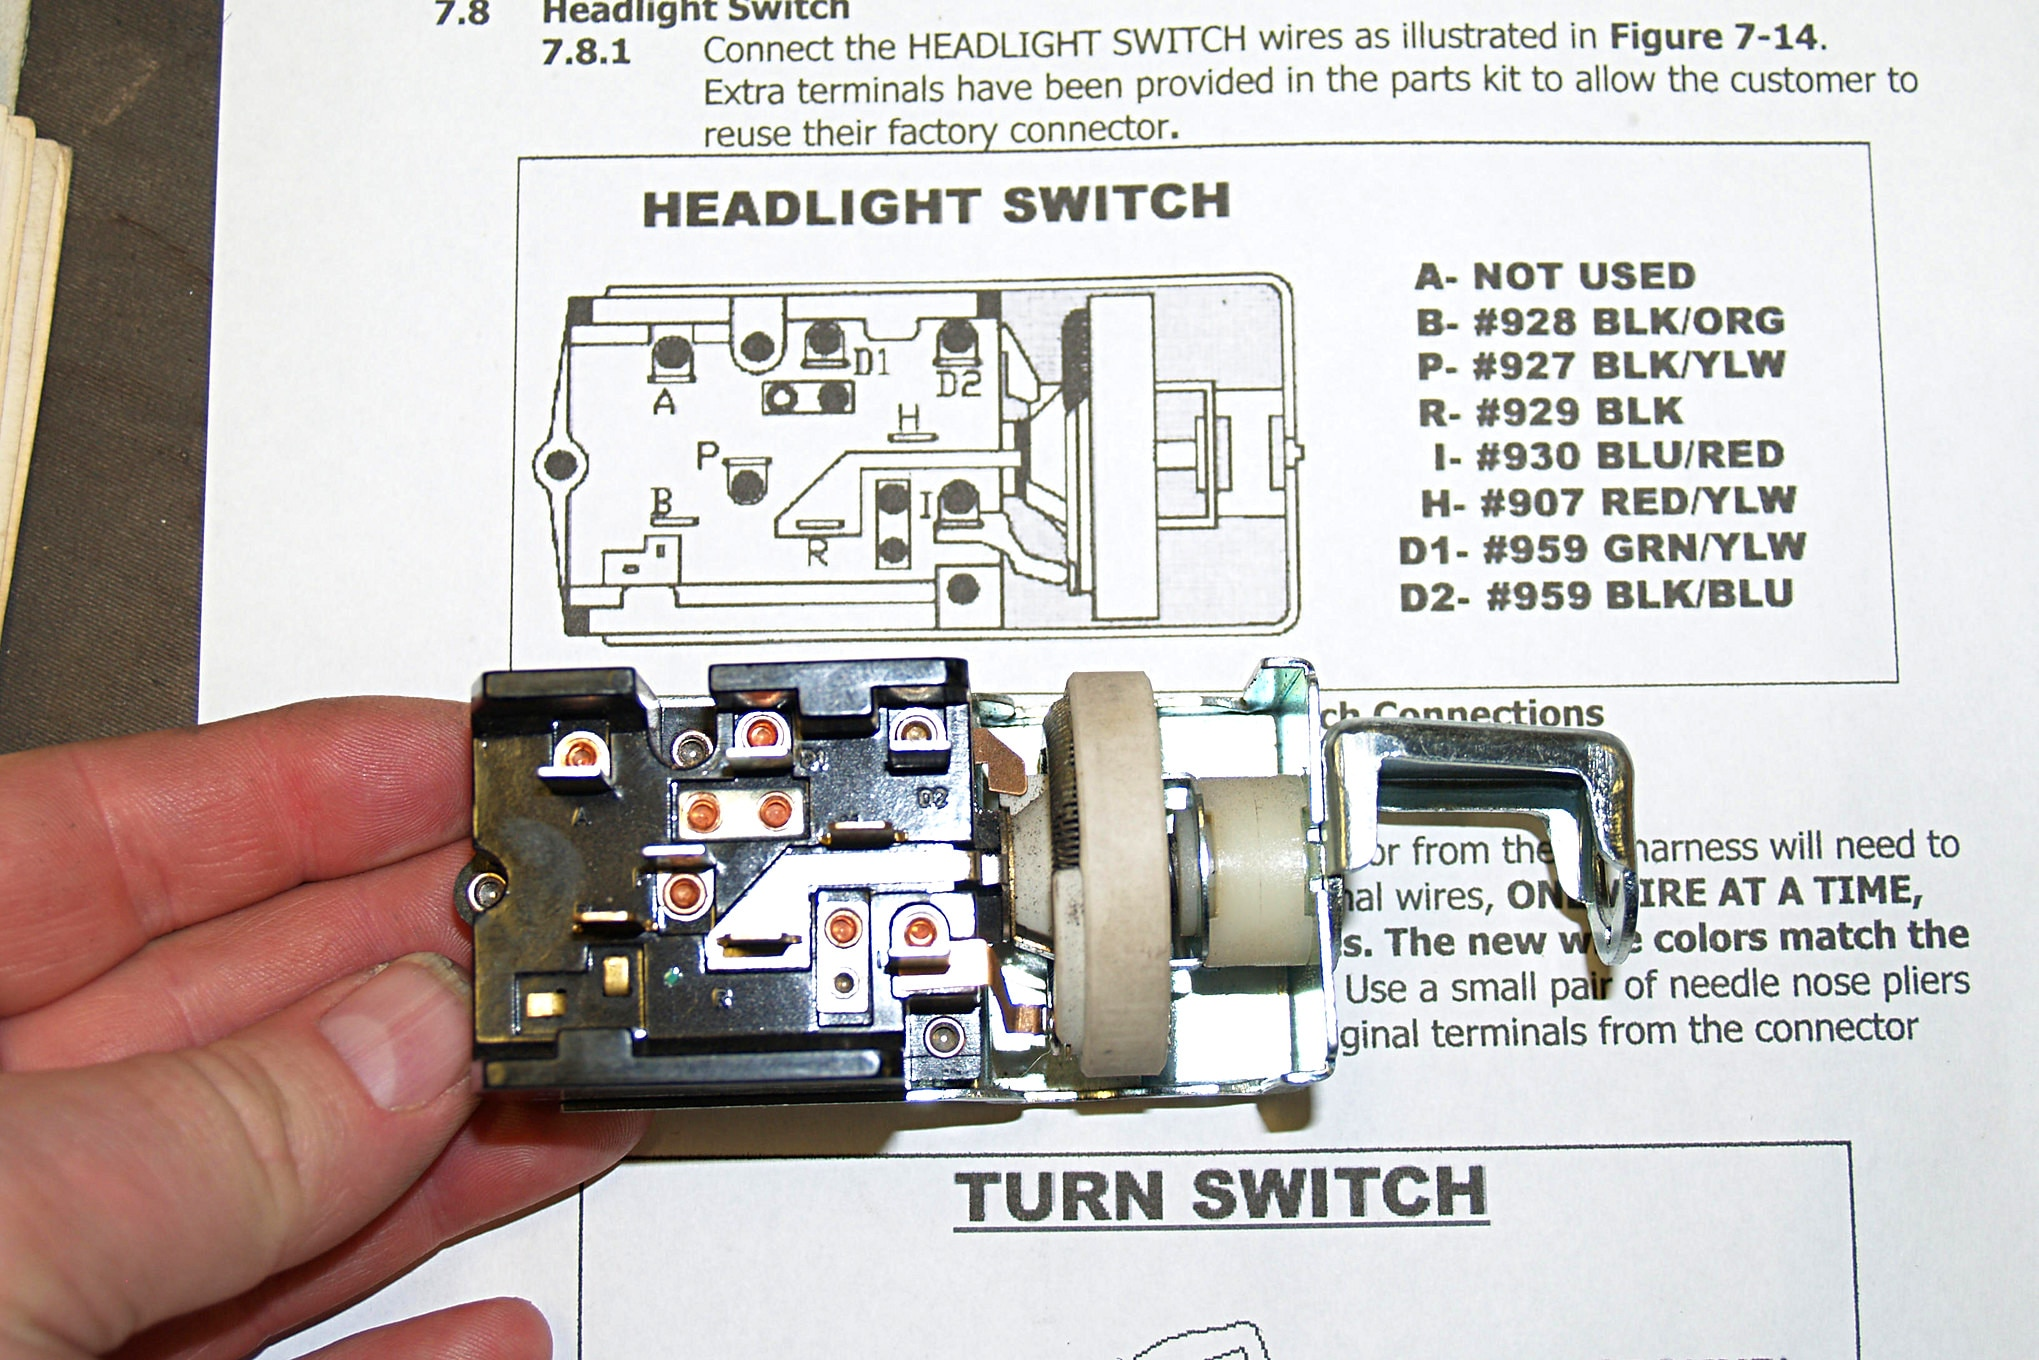 hight resolution of electrical gremlins and more vintage mustang tech questions and answers headlight switch wiring pigtail kit includes 1 headlight switch